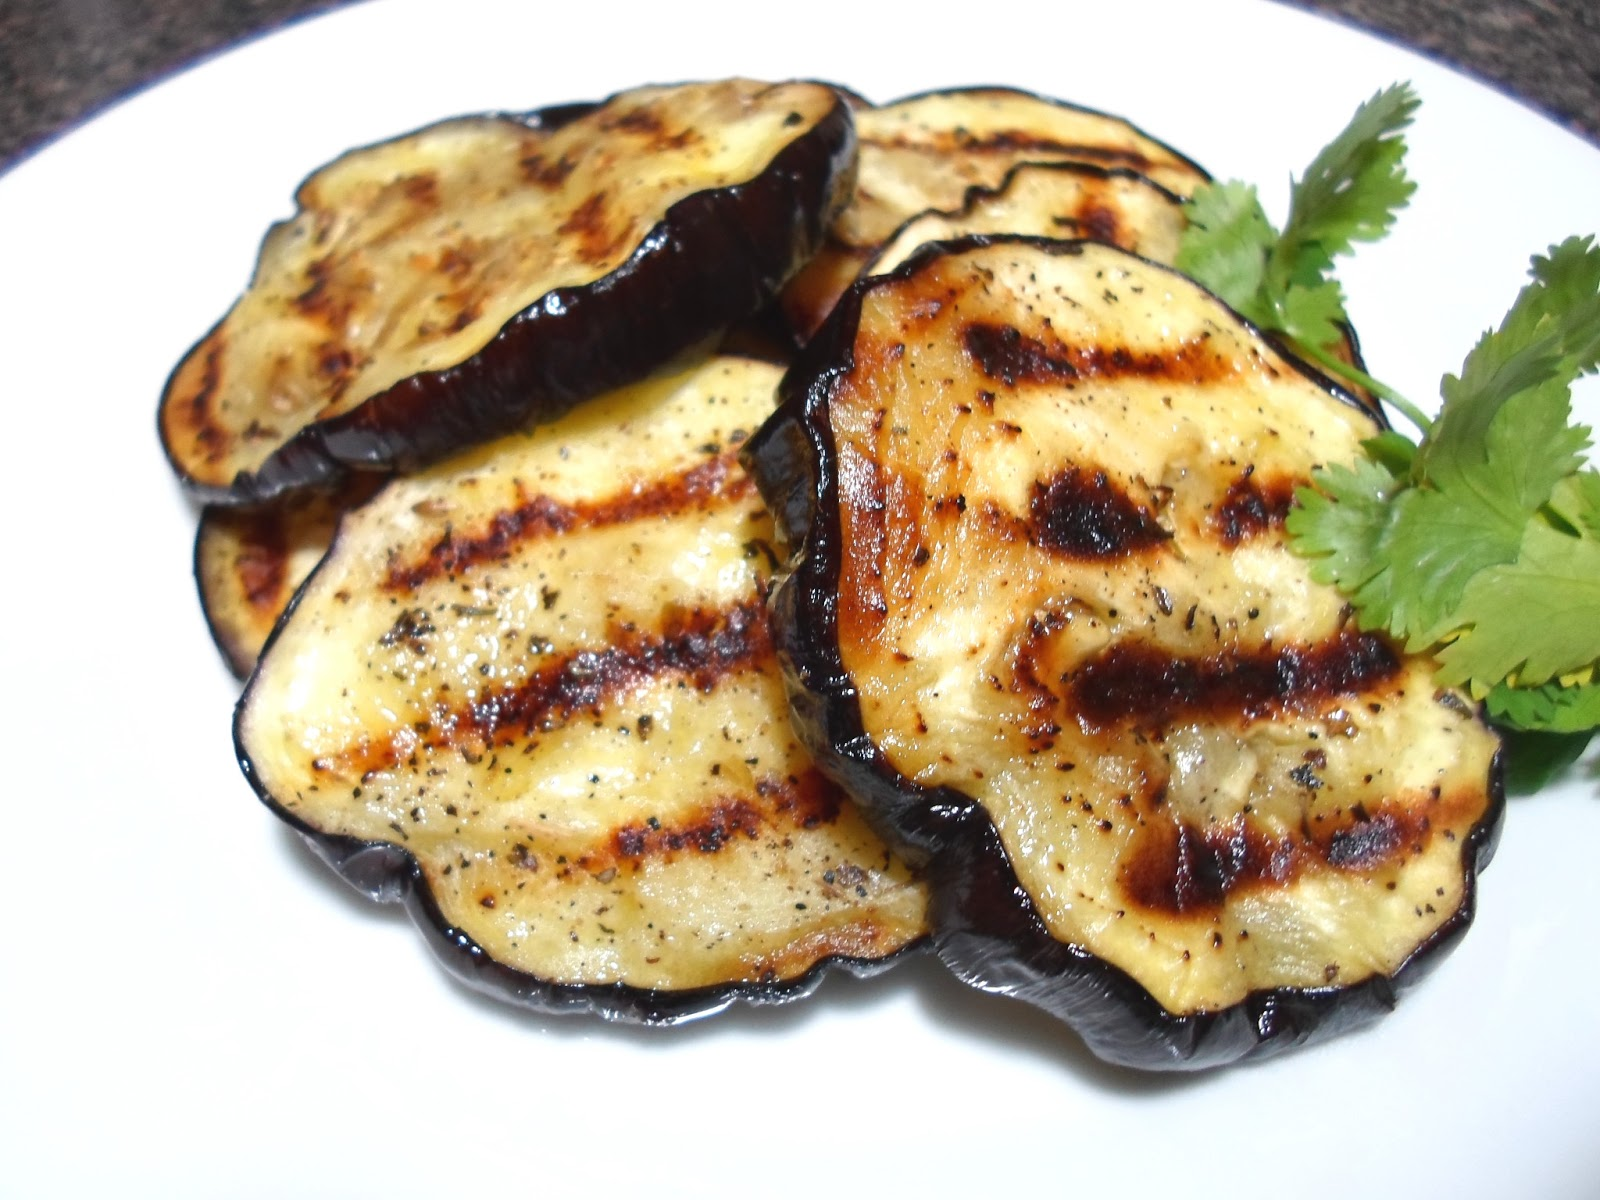 grilled eggplant and olive pizza grilled eggplant baba ganoush grilled ...